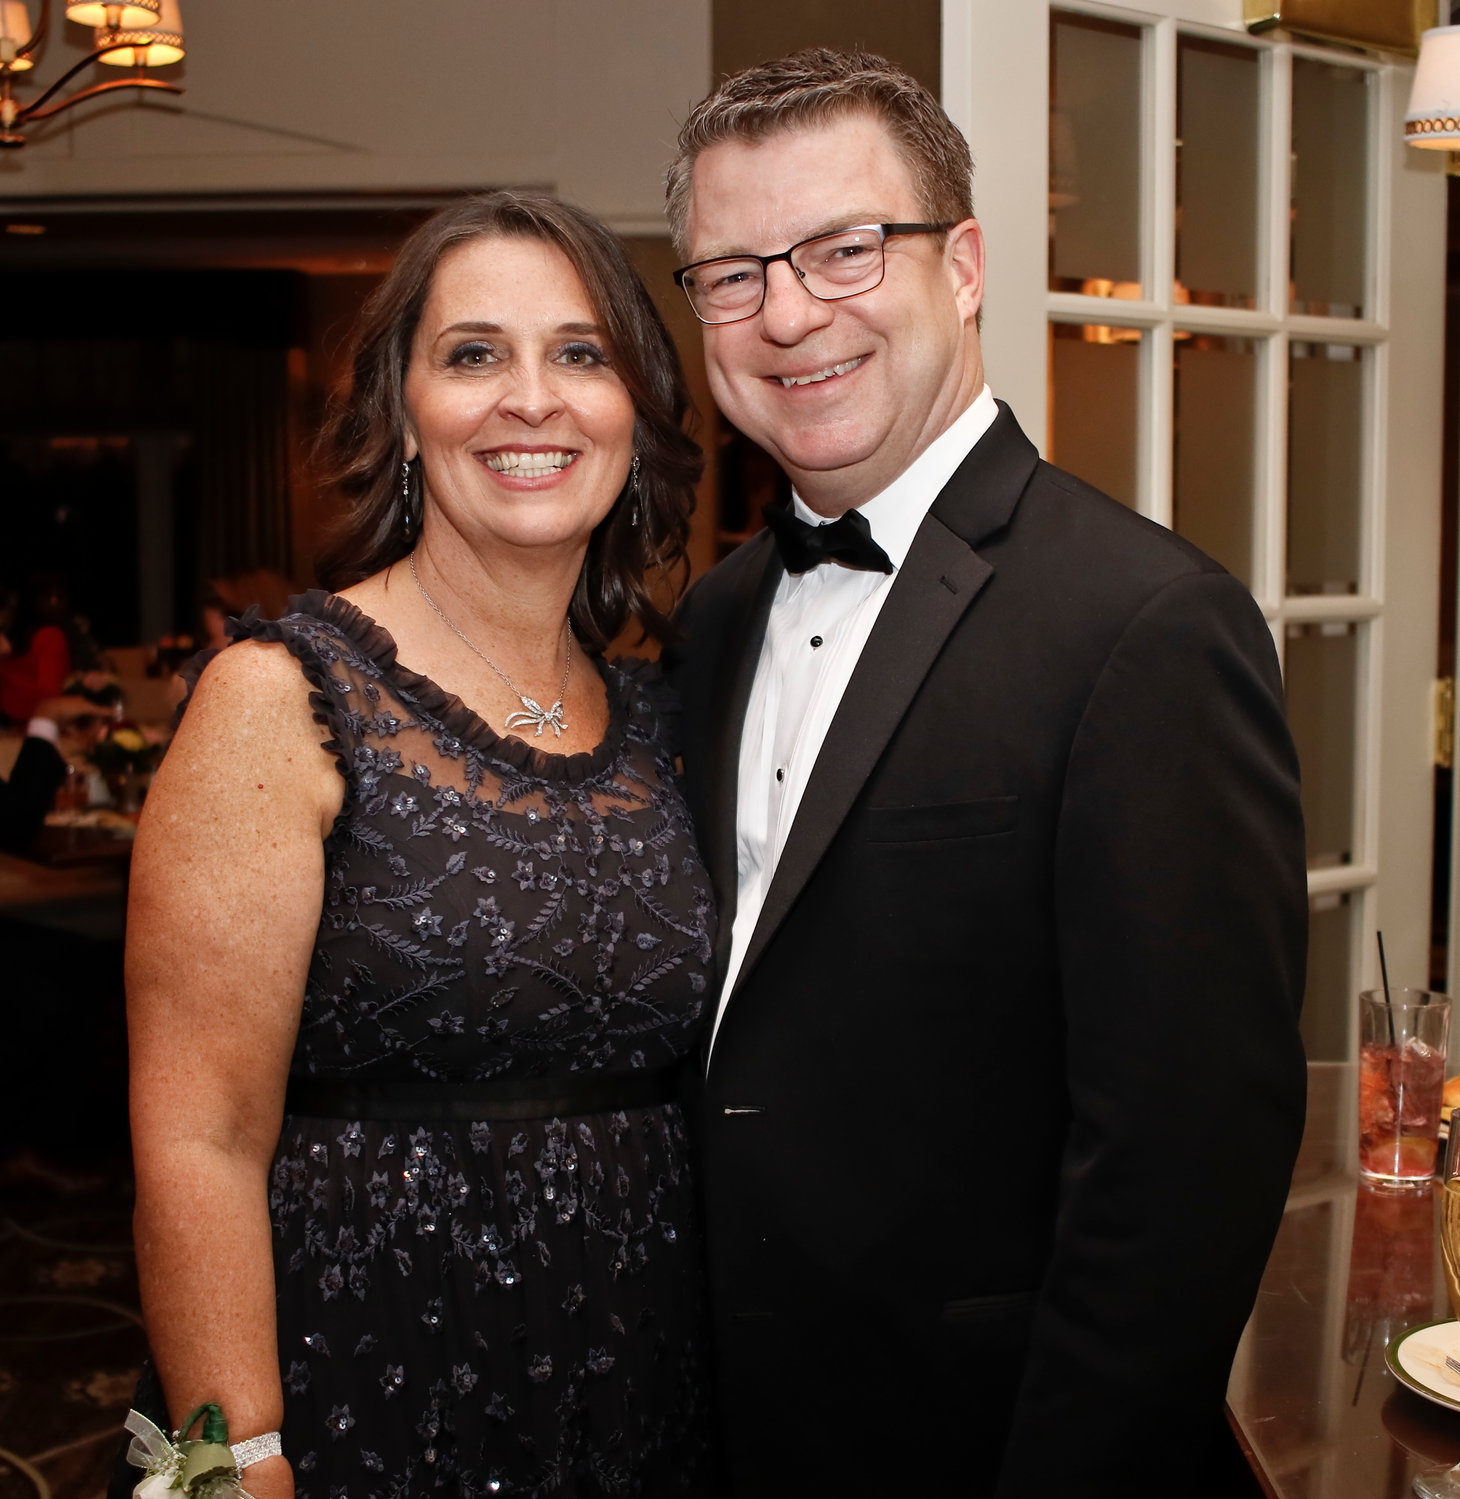 Education Foundation Gala honoree Katie Schumacher attended with her husband, Jeff.